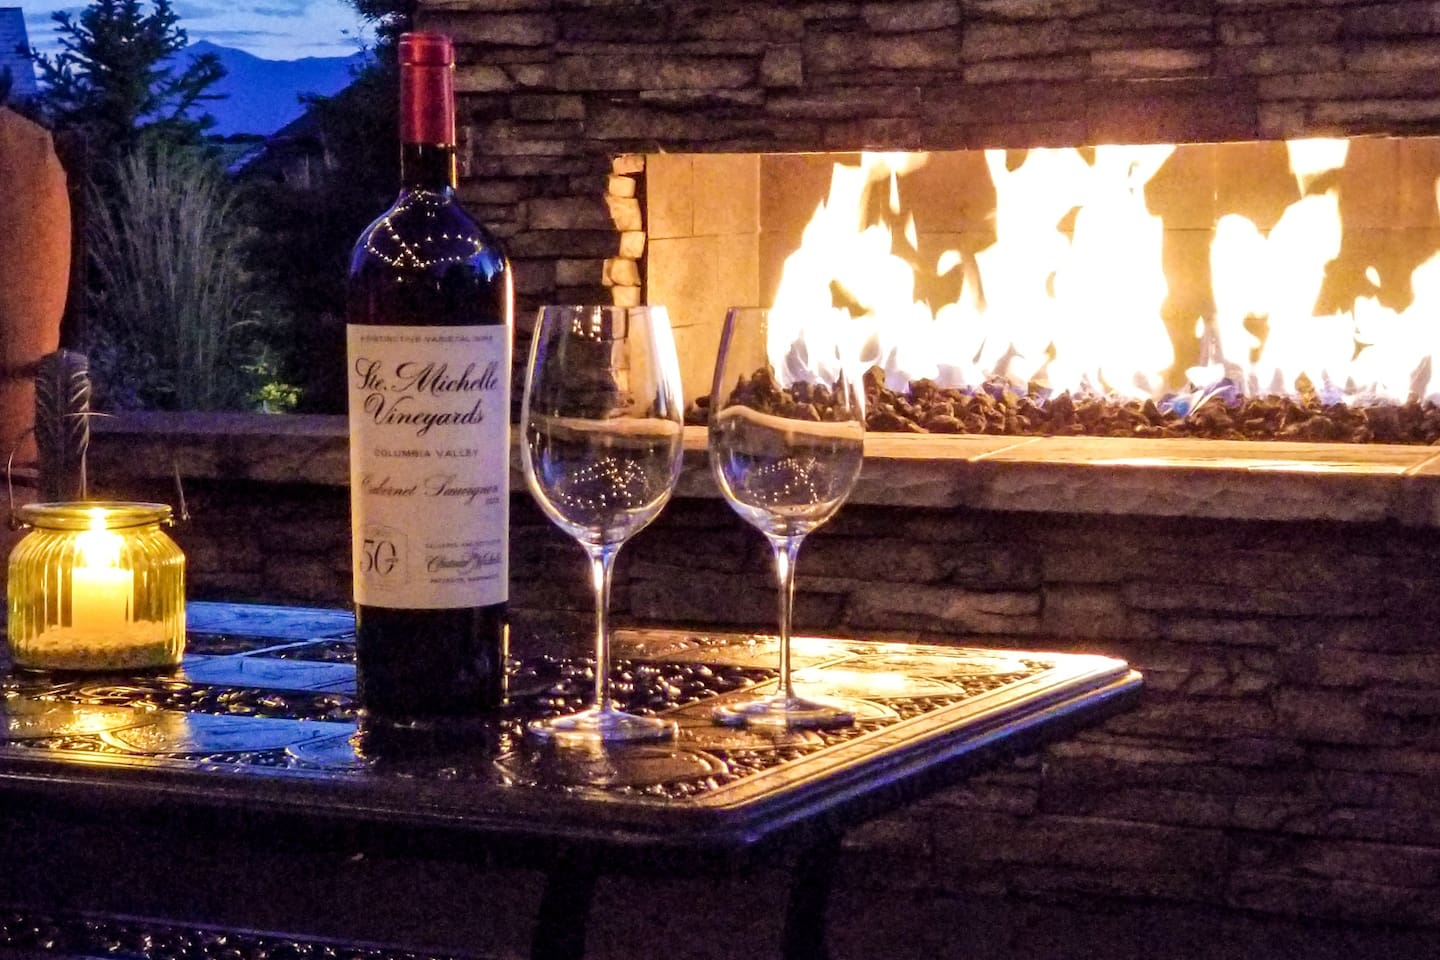 Have a drink or just relax in our outdoor living space after an exhilarating day of playing in the Colorado Outdoors.